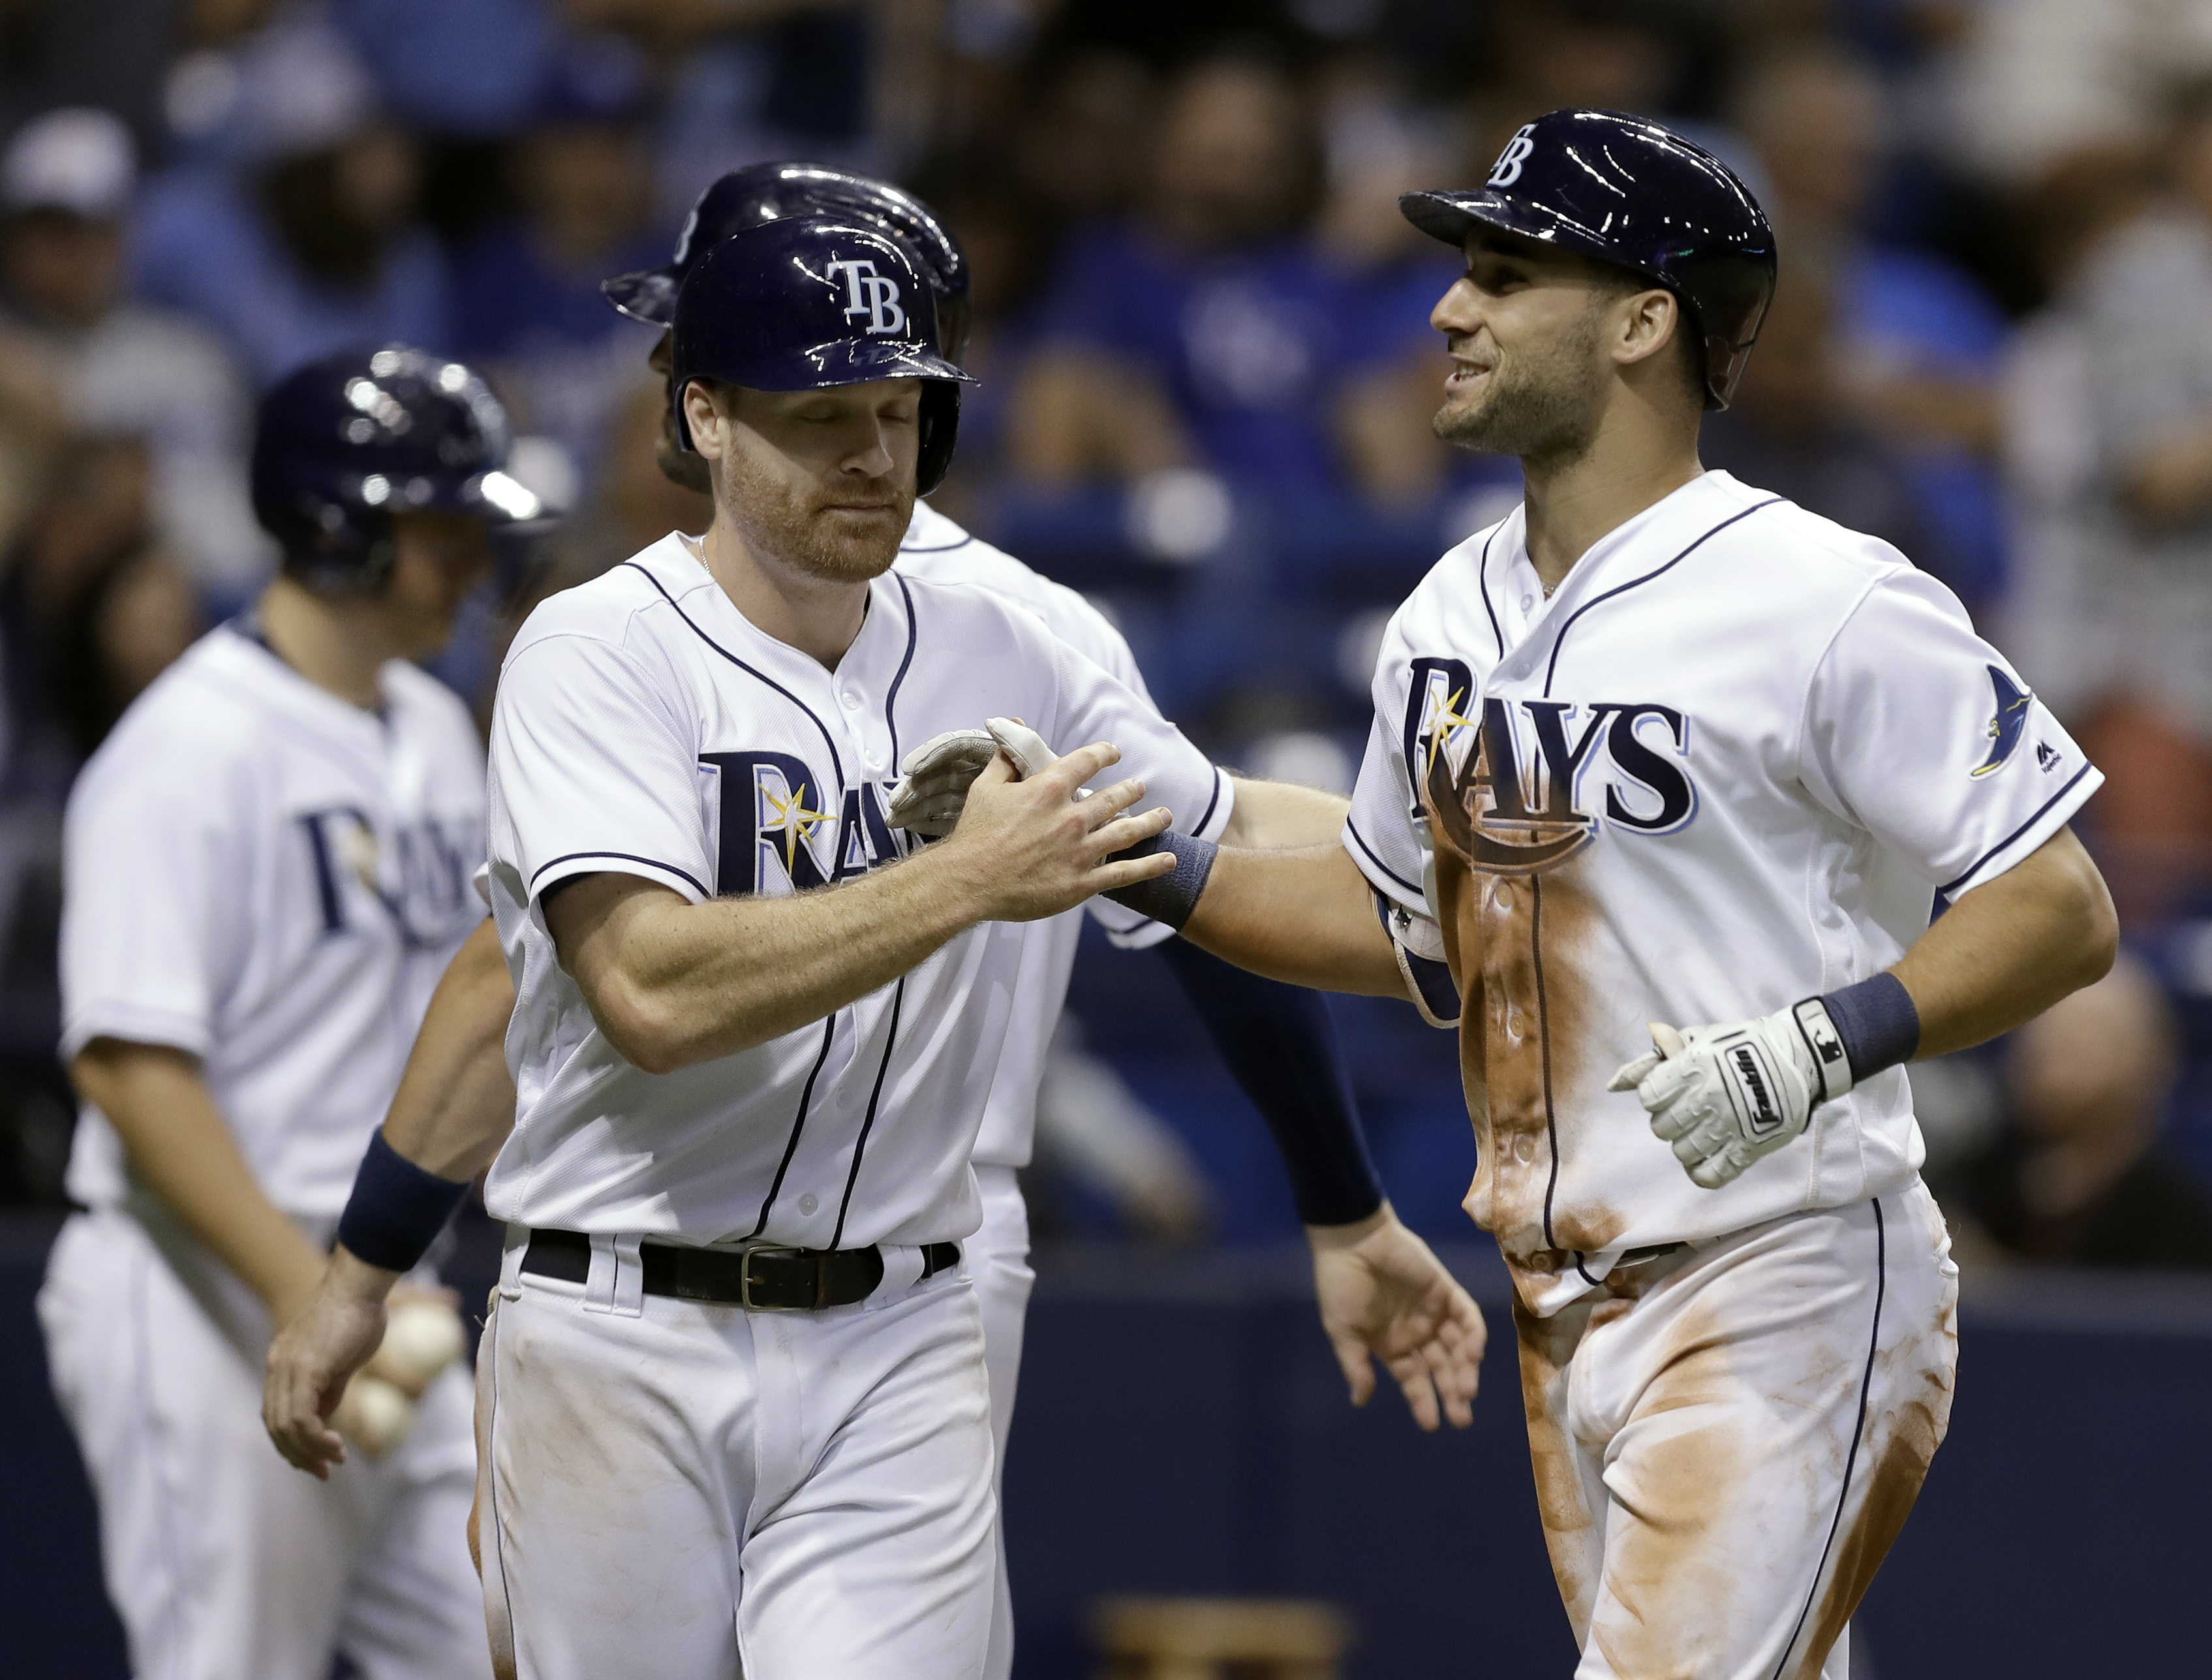 Tampa Bay Rays' Kevin Kiermaier, right, celebrates with Logan Forsythe after his three-run home run off Kansas City Royals relief pitcher Chien-Ming Wang during the sixth inning of a baseball game Wednesday, Aug. 3, 2016, in St. Petersburg, Fla. (AP Photo